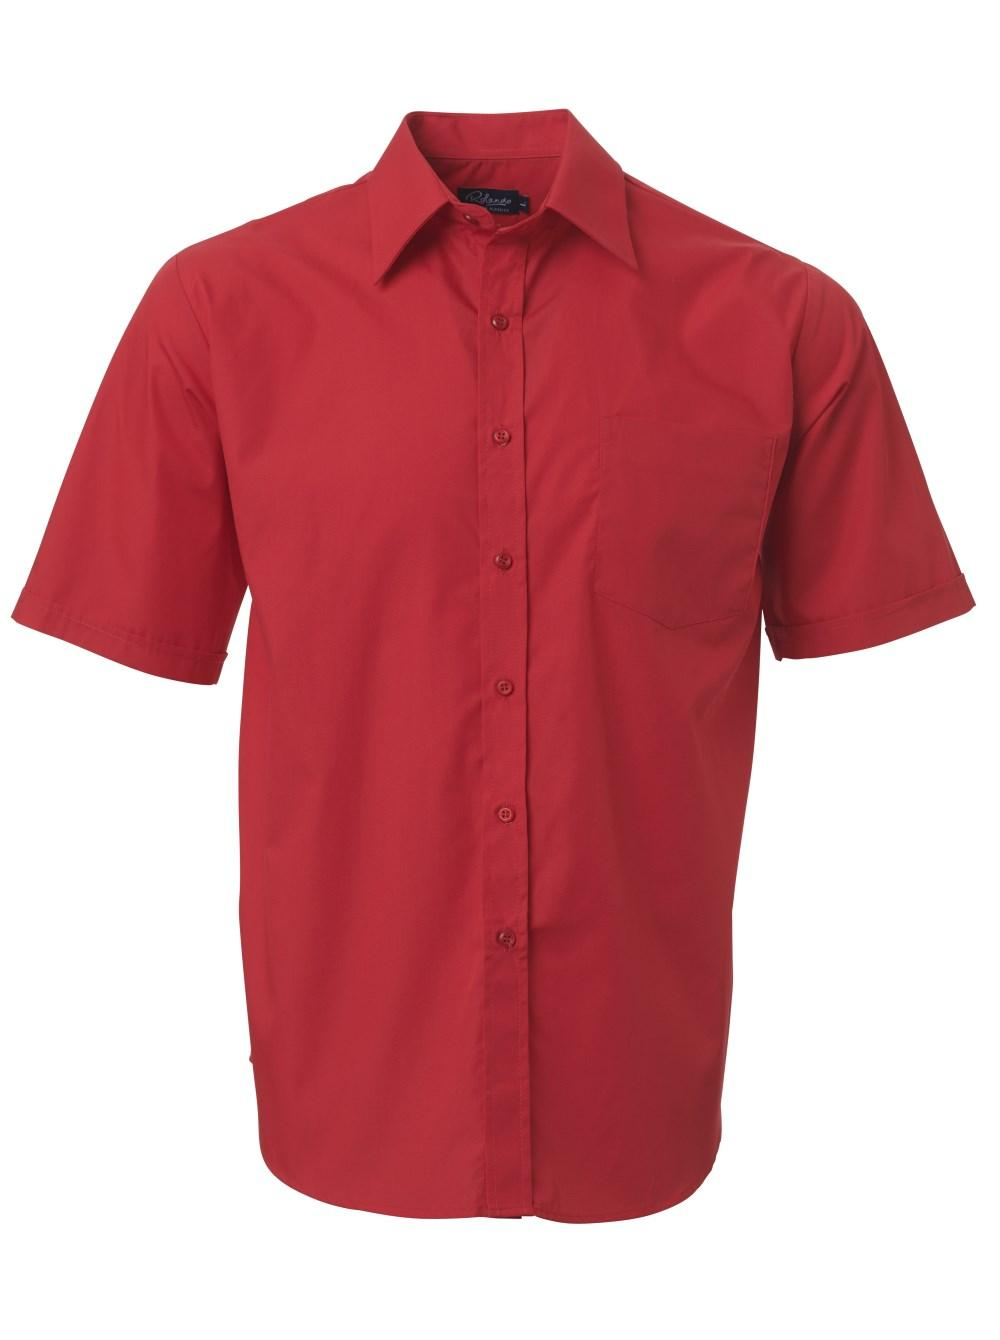 Mens P070 S/s Shirt - Red